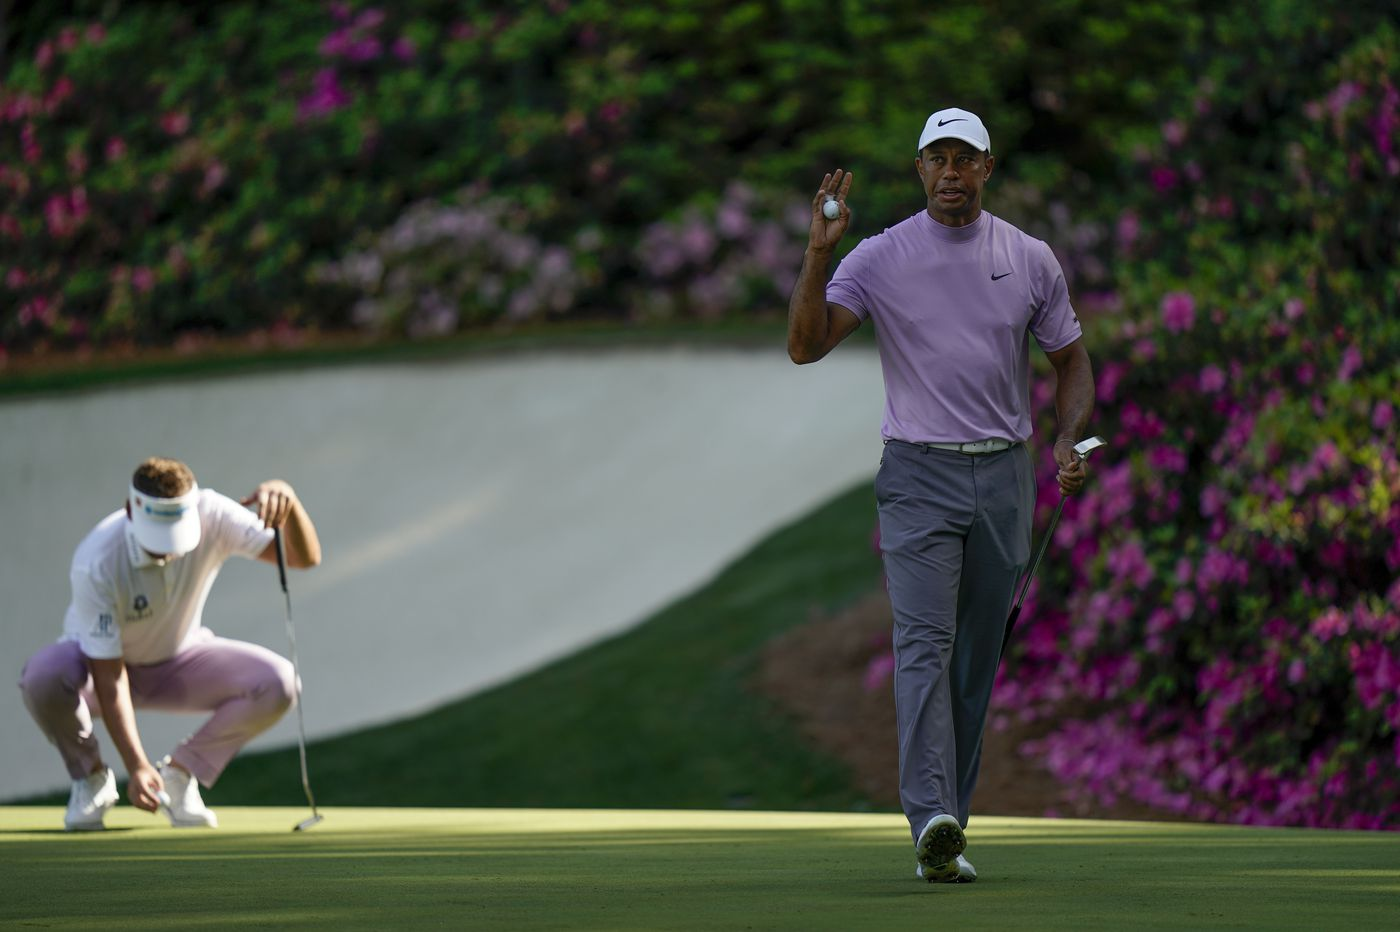 Tiger Woods Wins His 5th Masters Title, Marking A Career Comeback